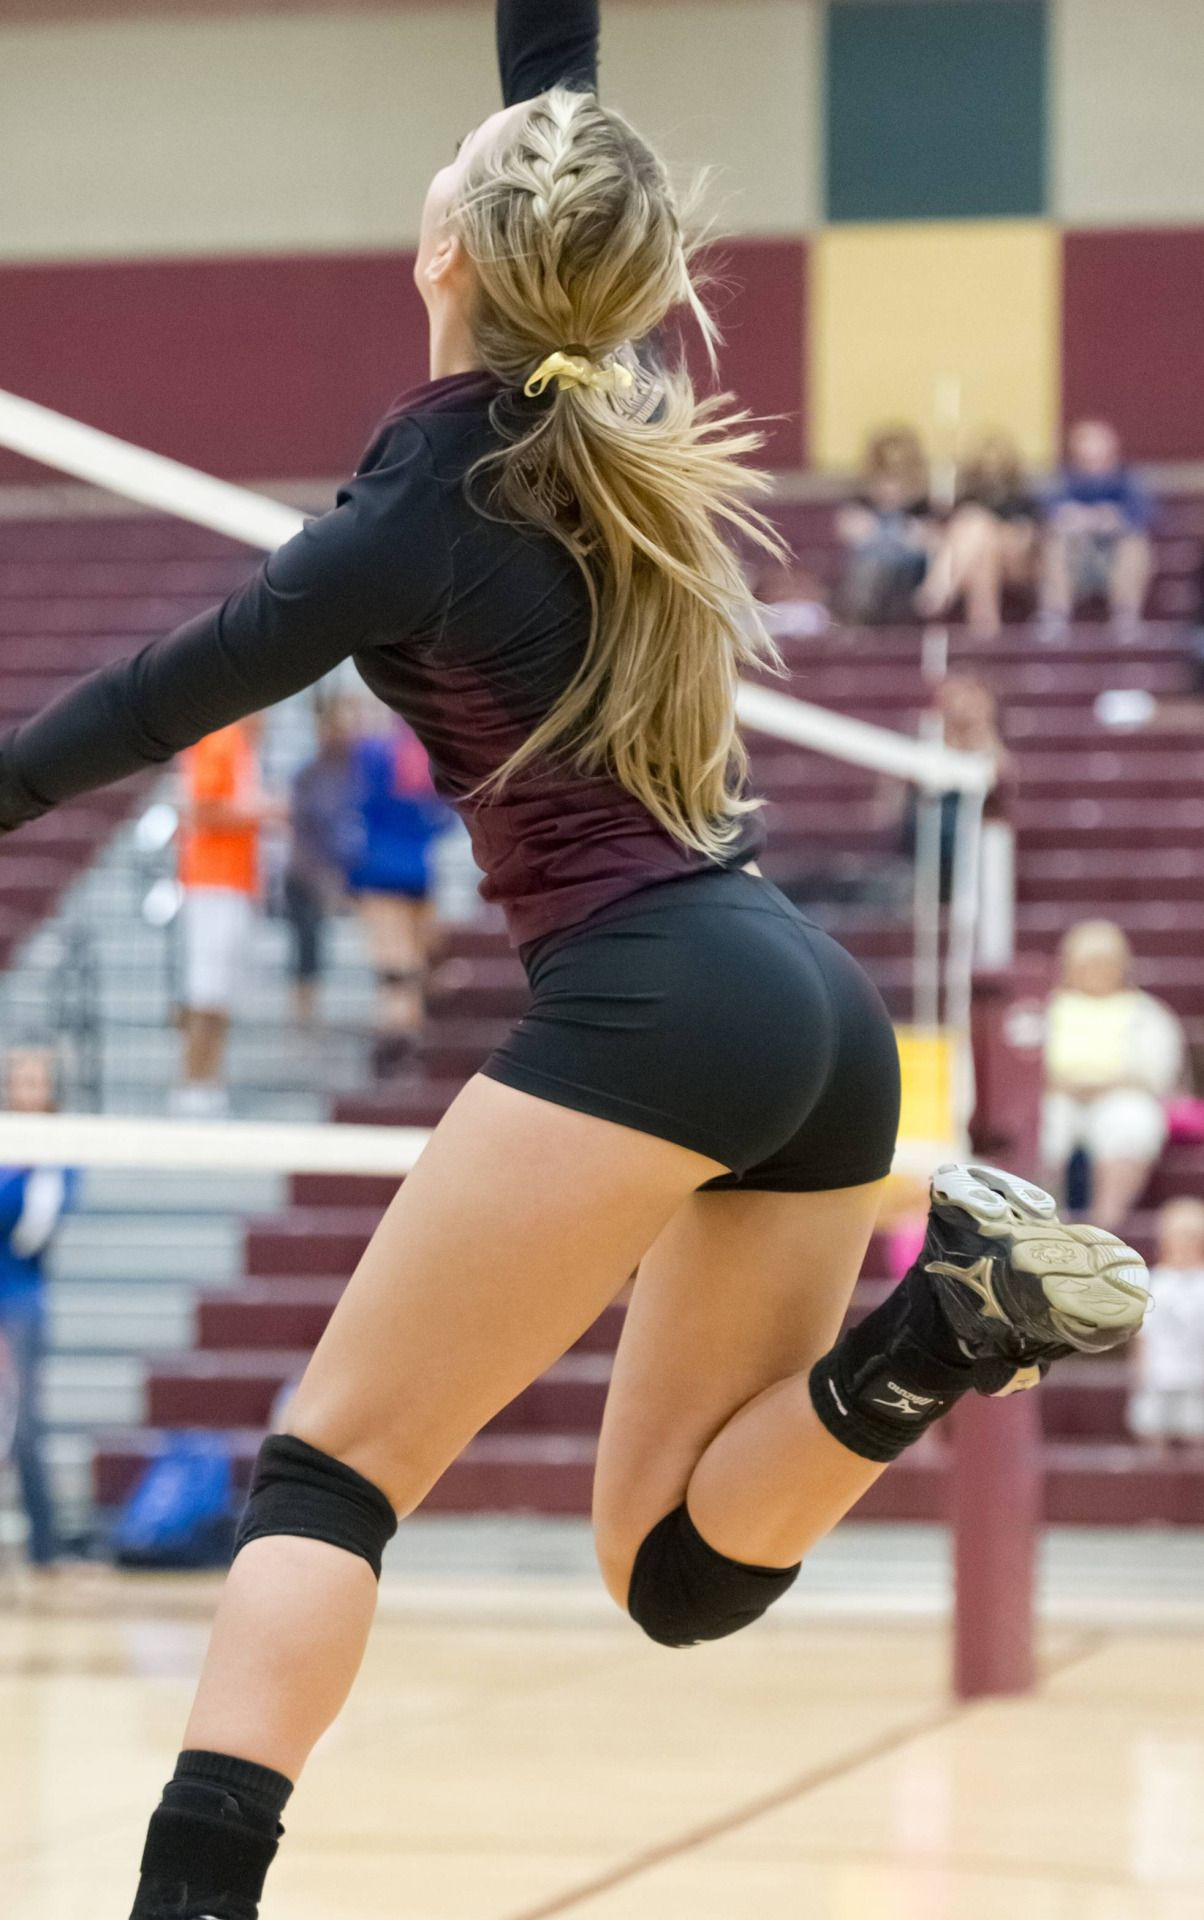 Volley ball spandex nude you